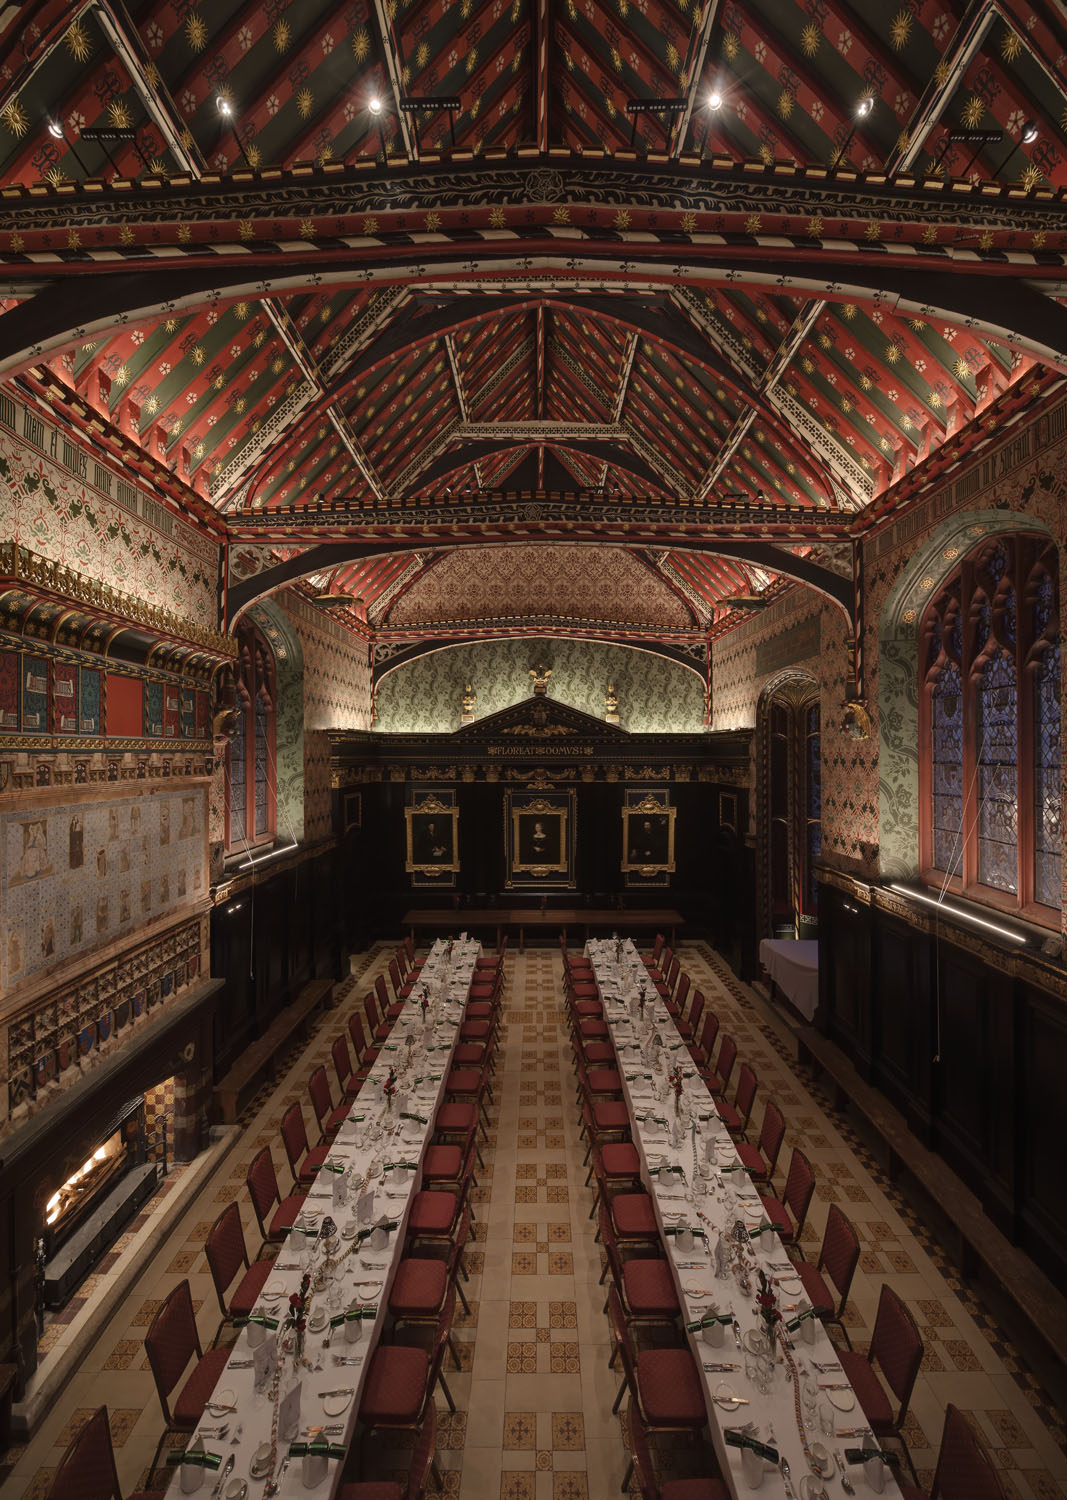 Interior photography of The Old Hall, Queen's College, Cambridge, for Hoare Lea Lighting post lighting upgrade.